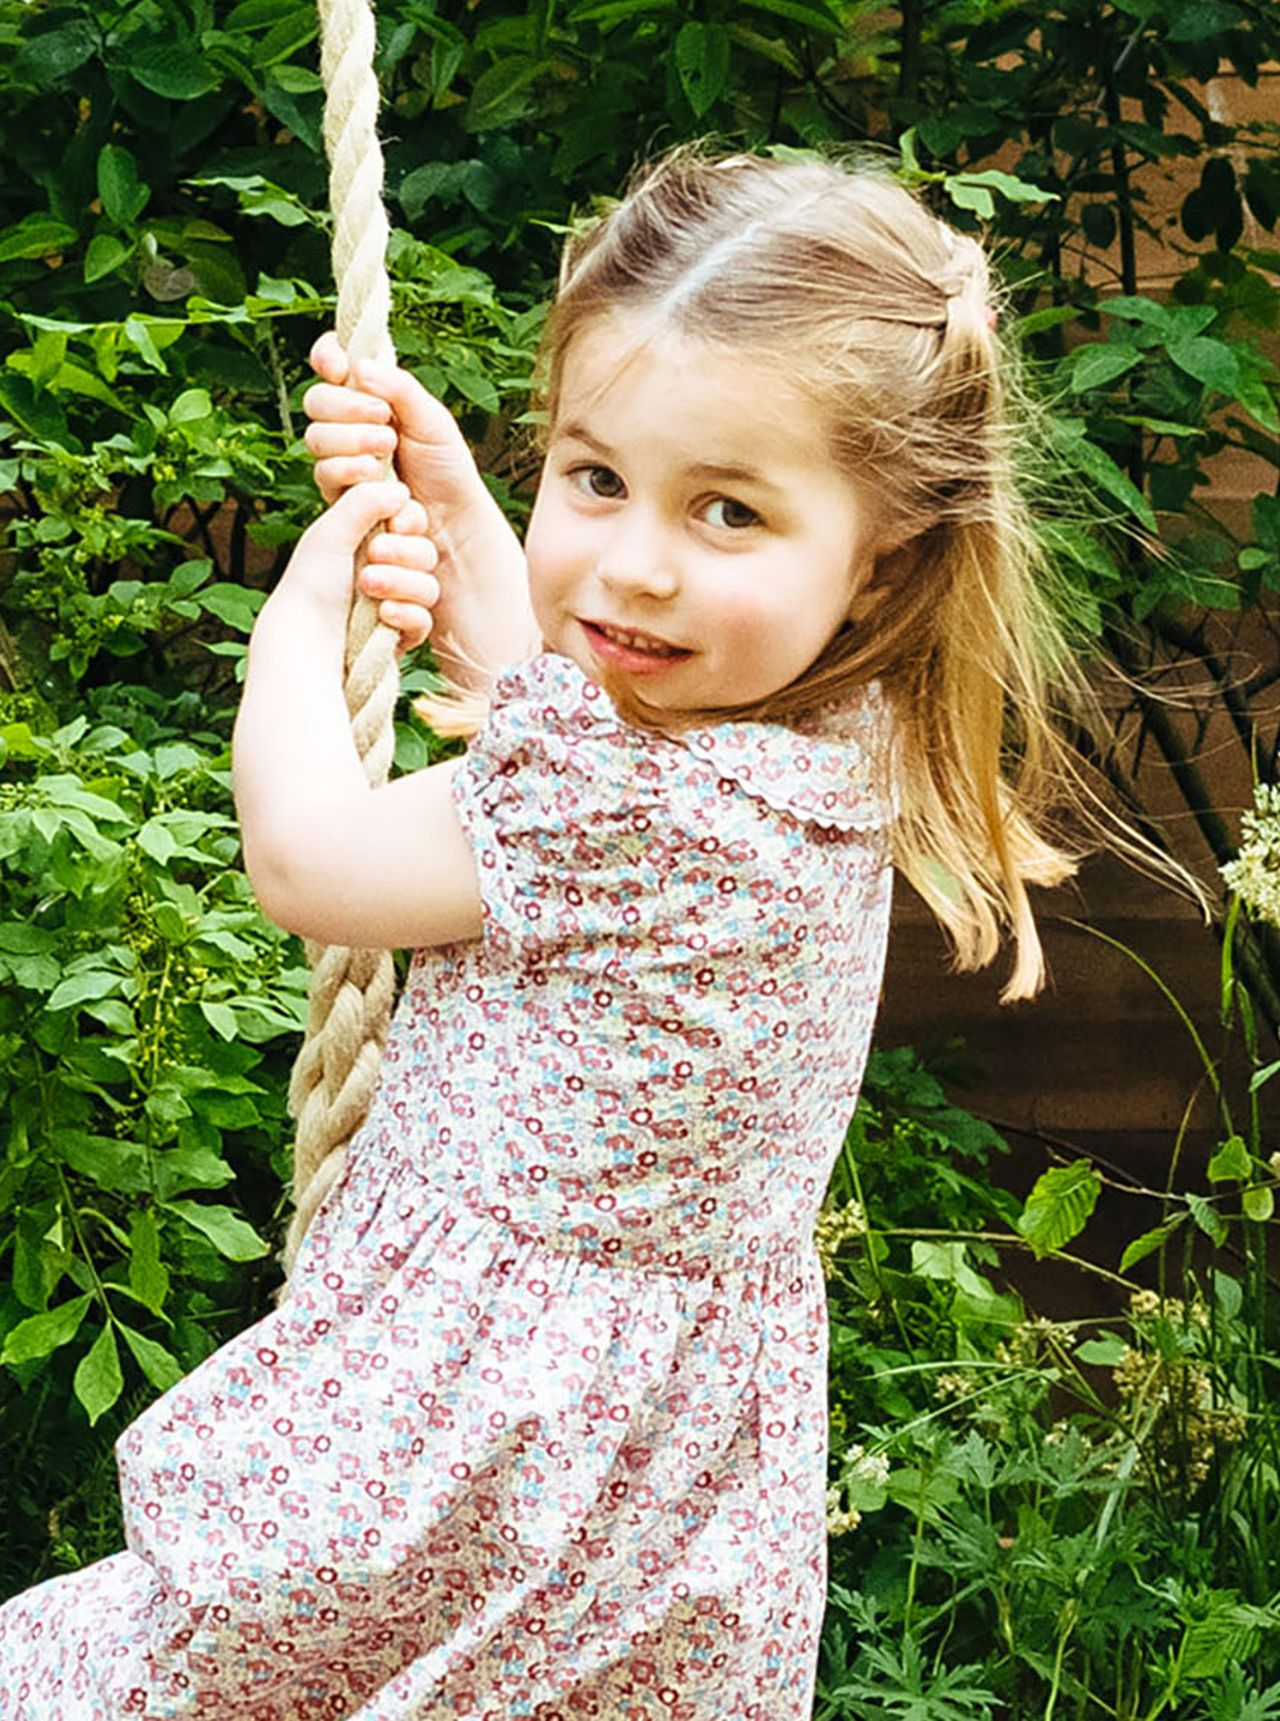 **STRICTLY EMBARGOED UNTIL 2230 BST SUNDAY MAY 19**  The Cambridge family visit Kate's